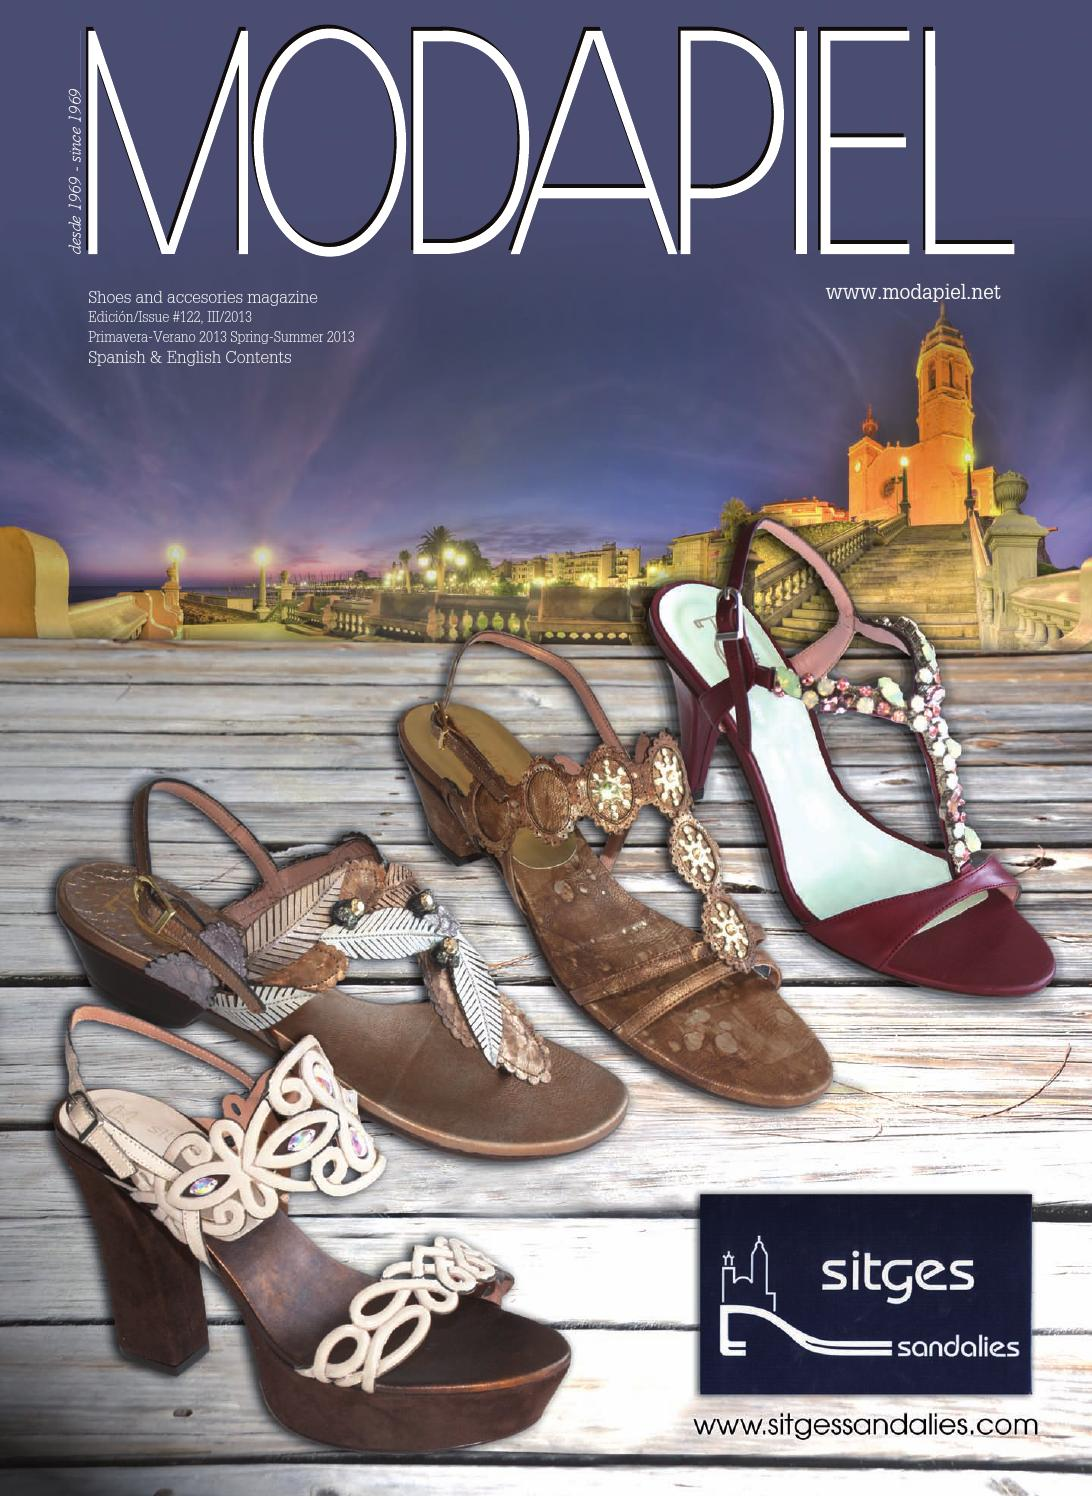 quality design 5b488 3cd64 Modapiel 122 Shoes and accessories magazine by Prensa Técnica S.L. - issuu